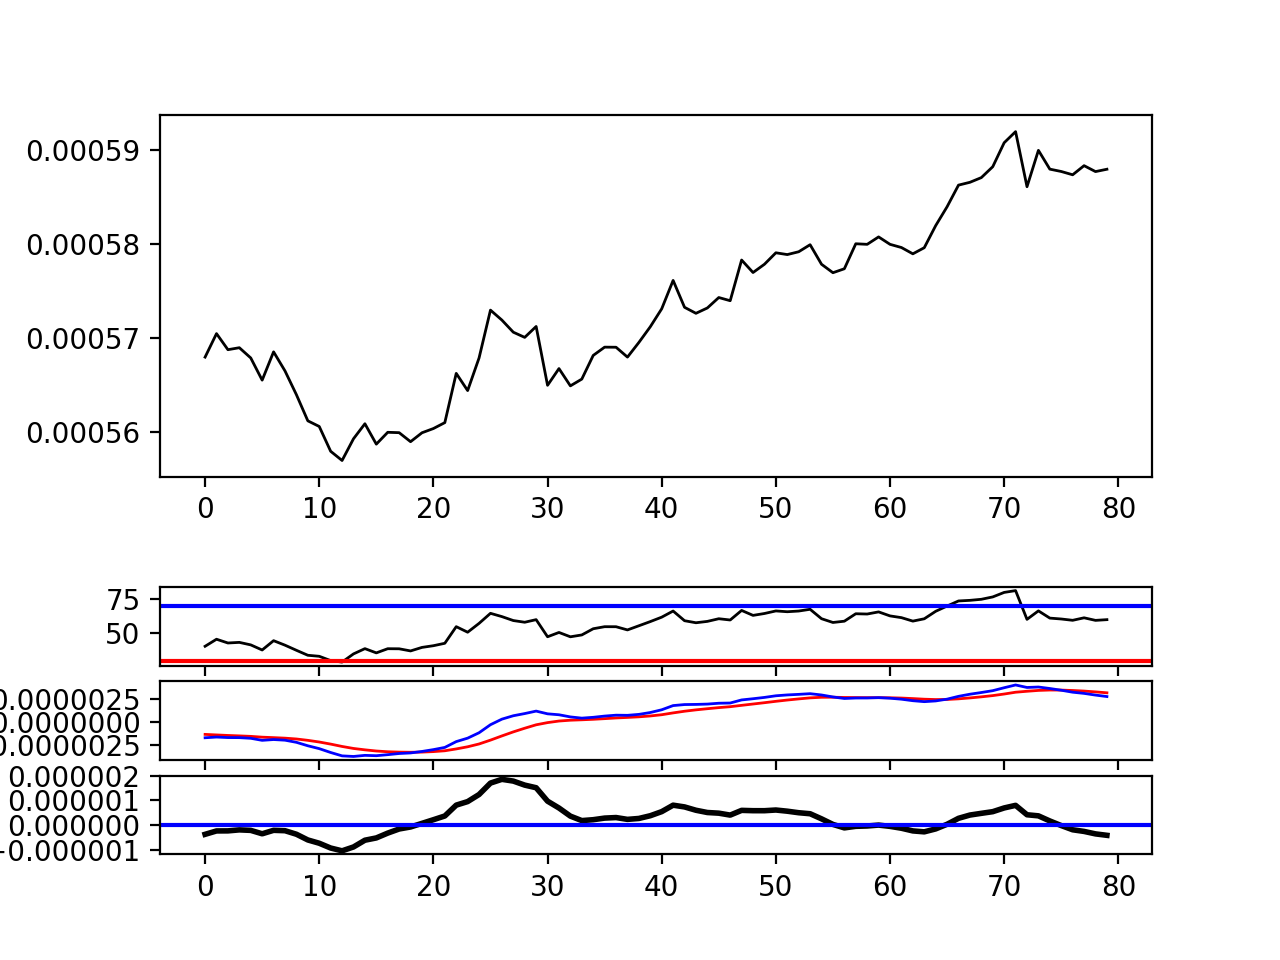 get MACD and Moving Averages (so that they are the same as